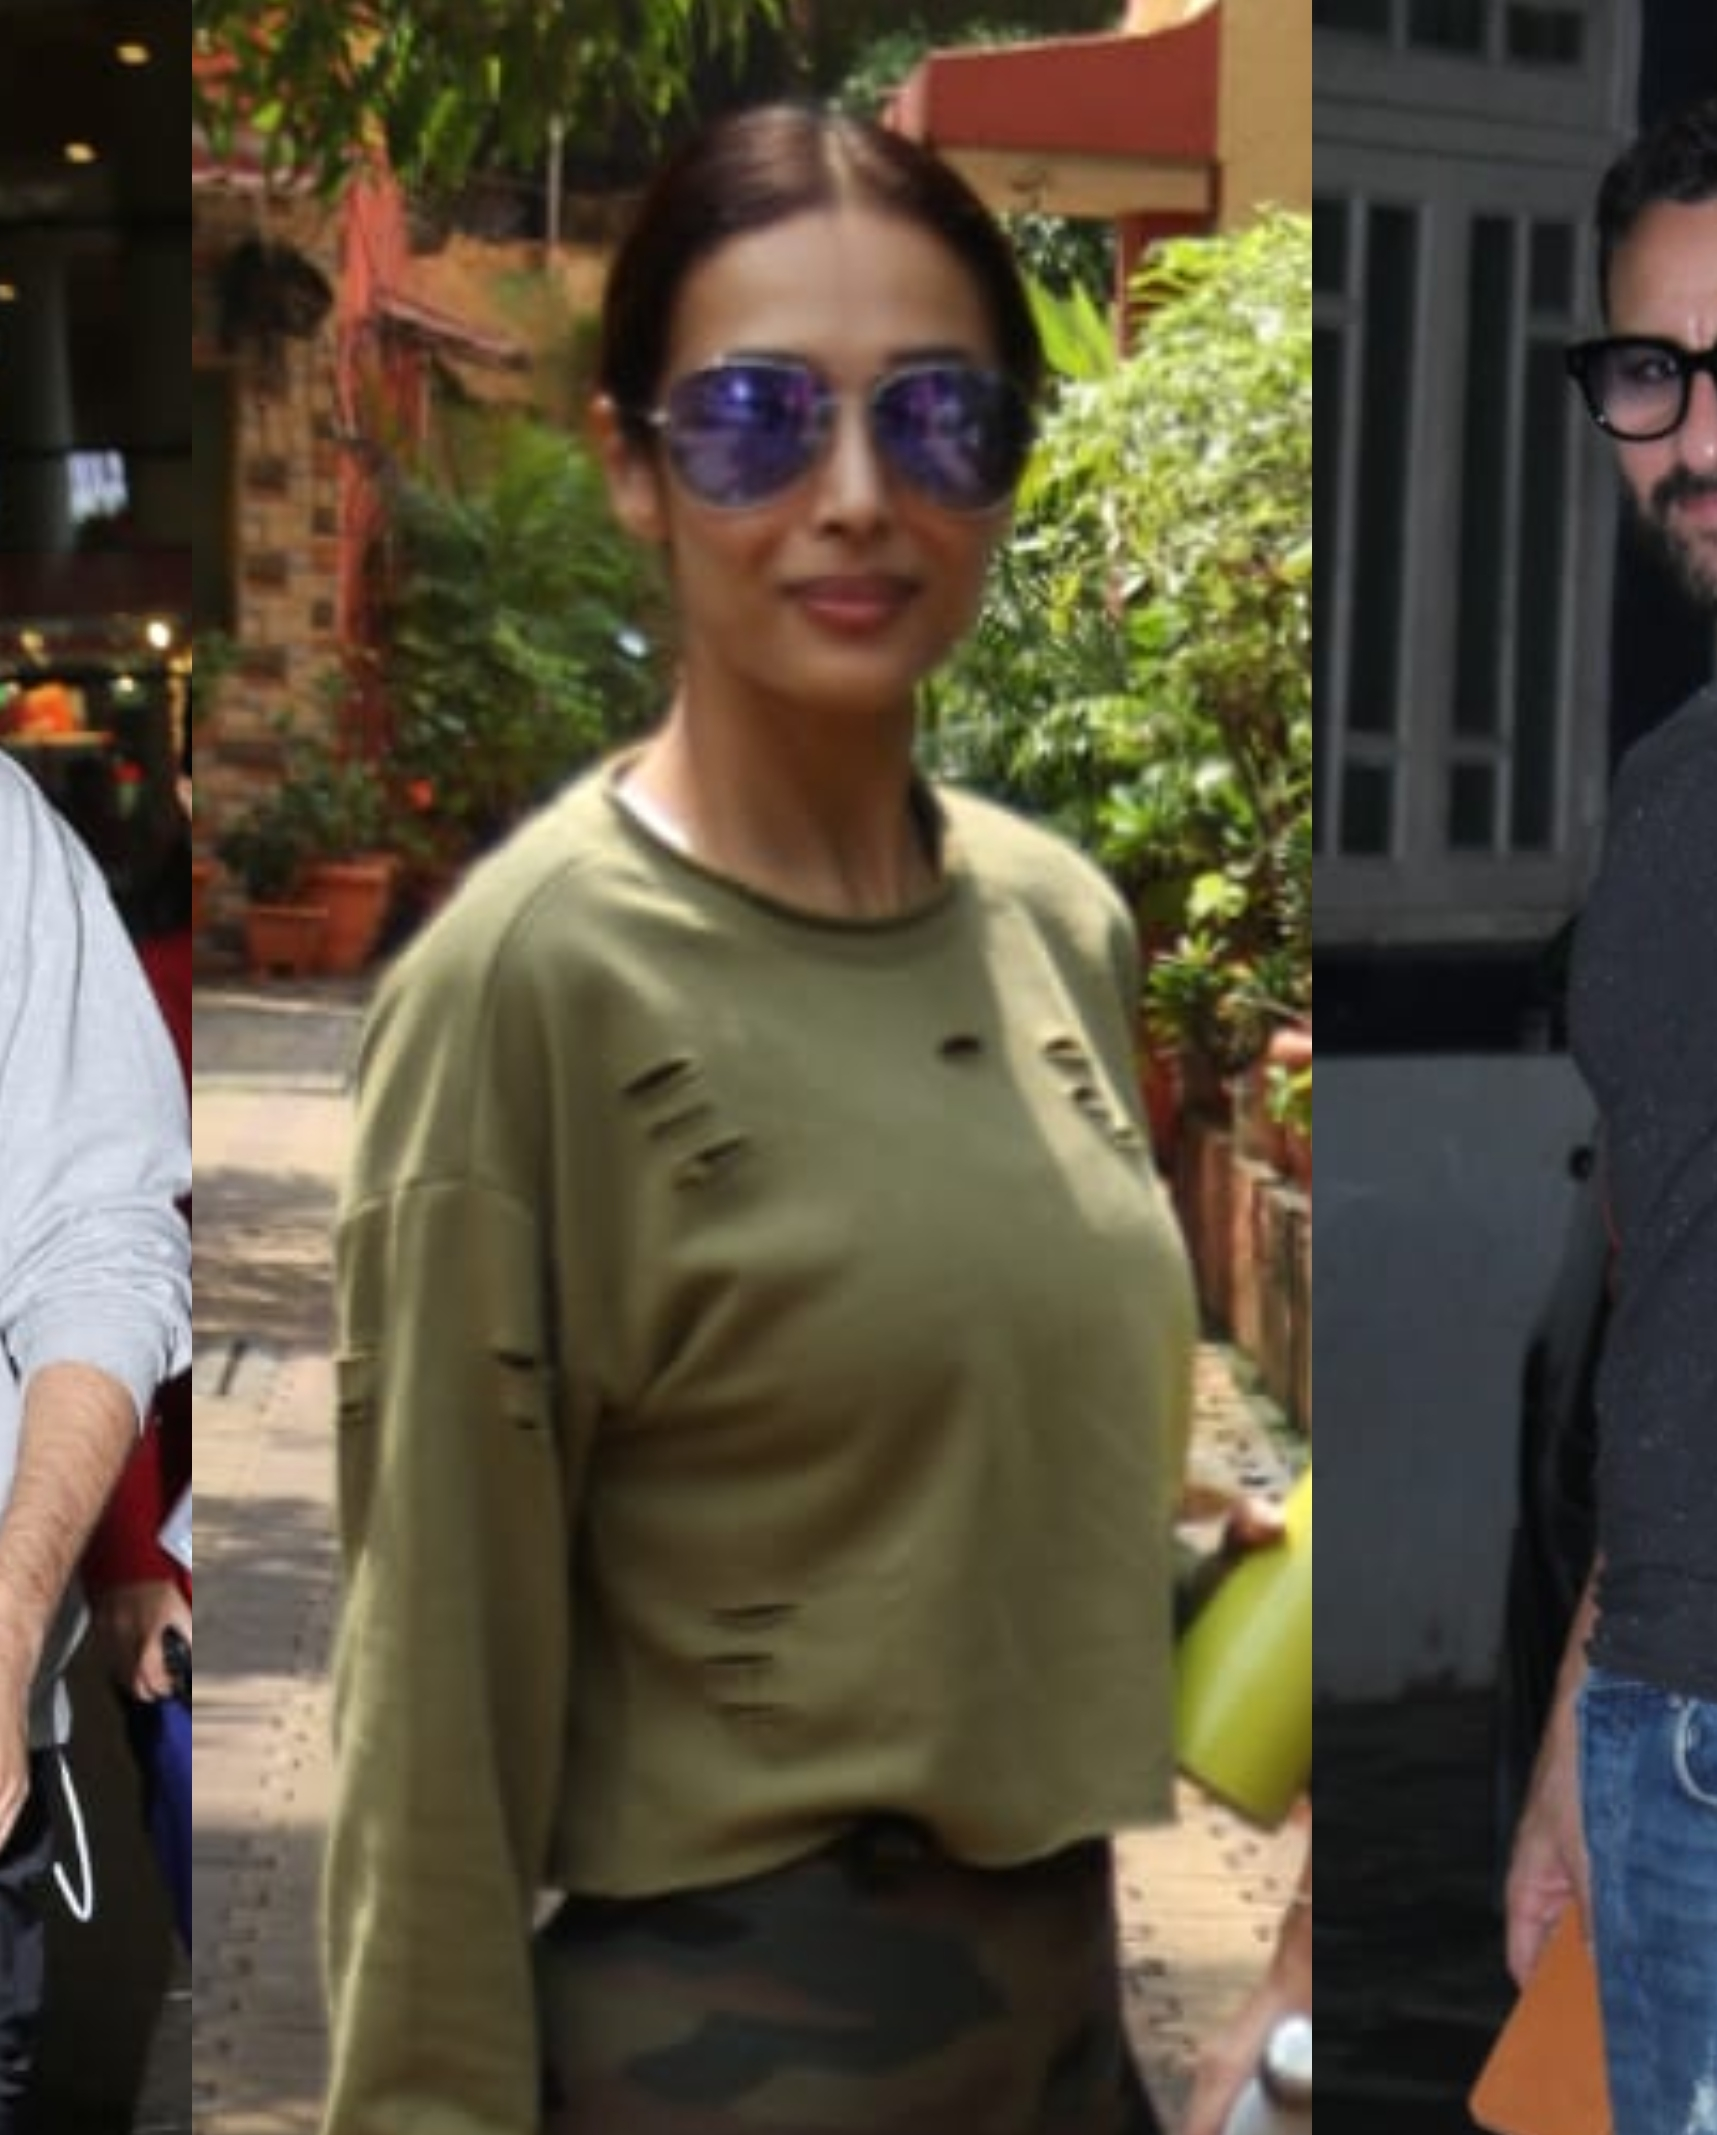 Shahid Kapoor, Malaika Arora, Saif Ali Khan clicked by Paparazzi in the city